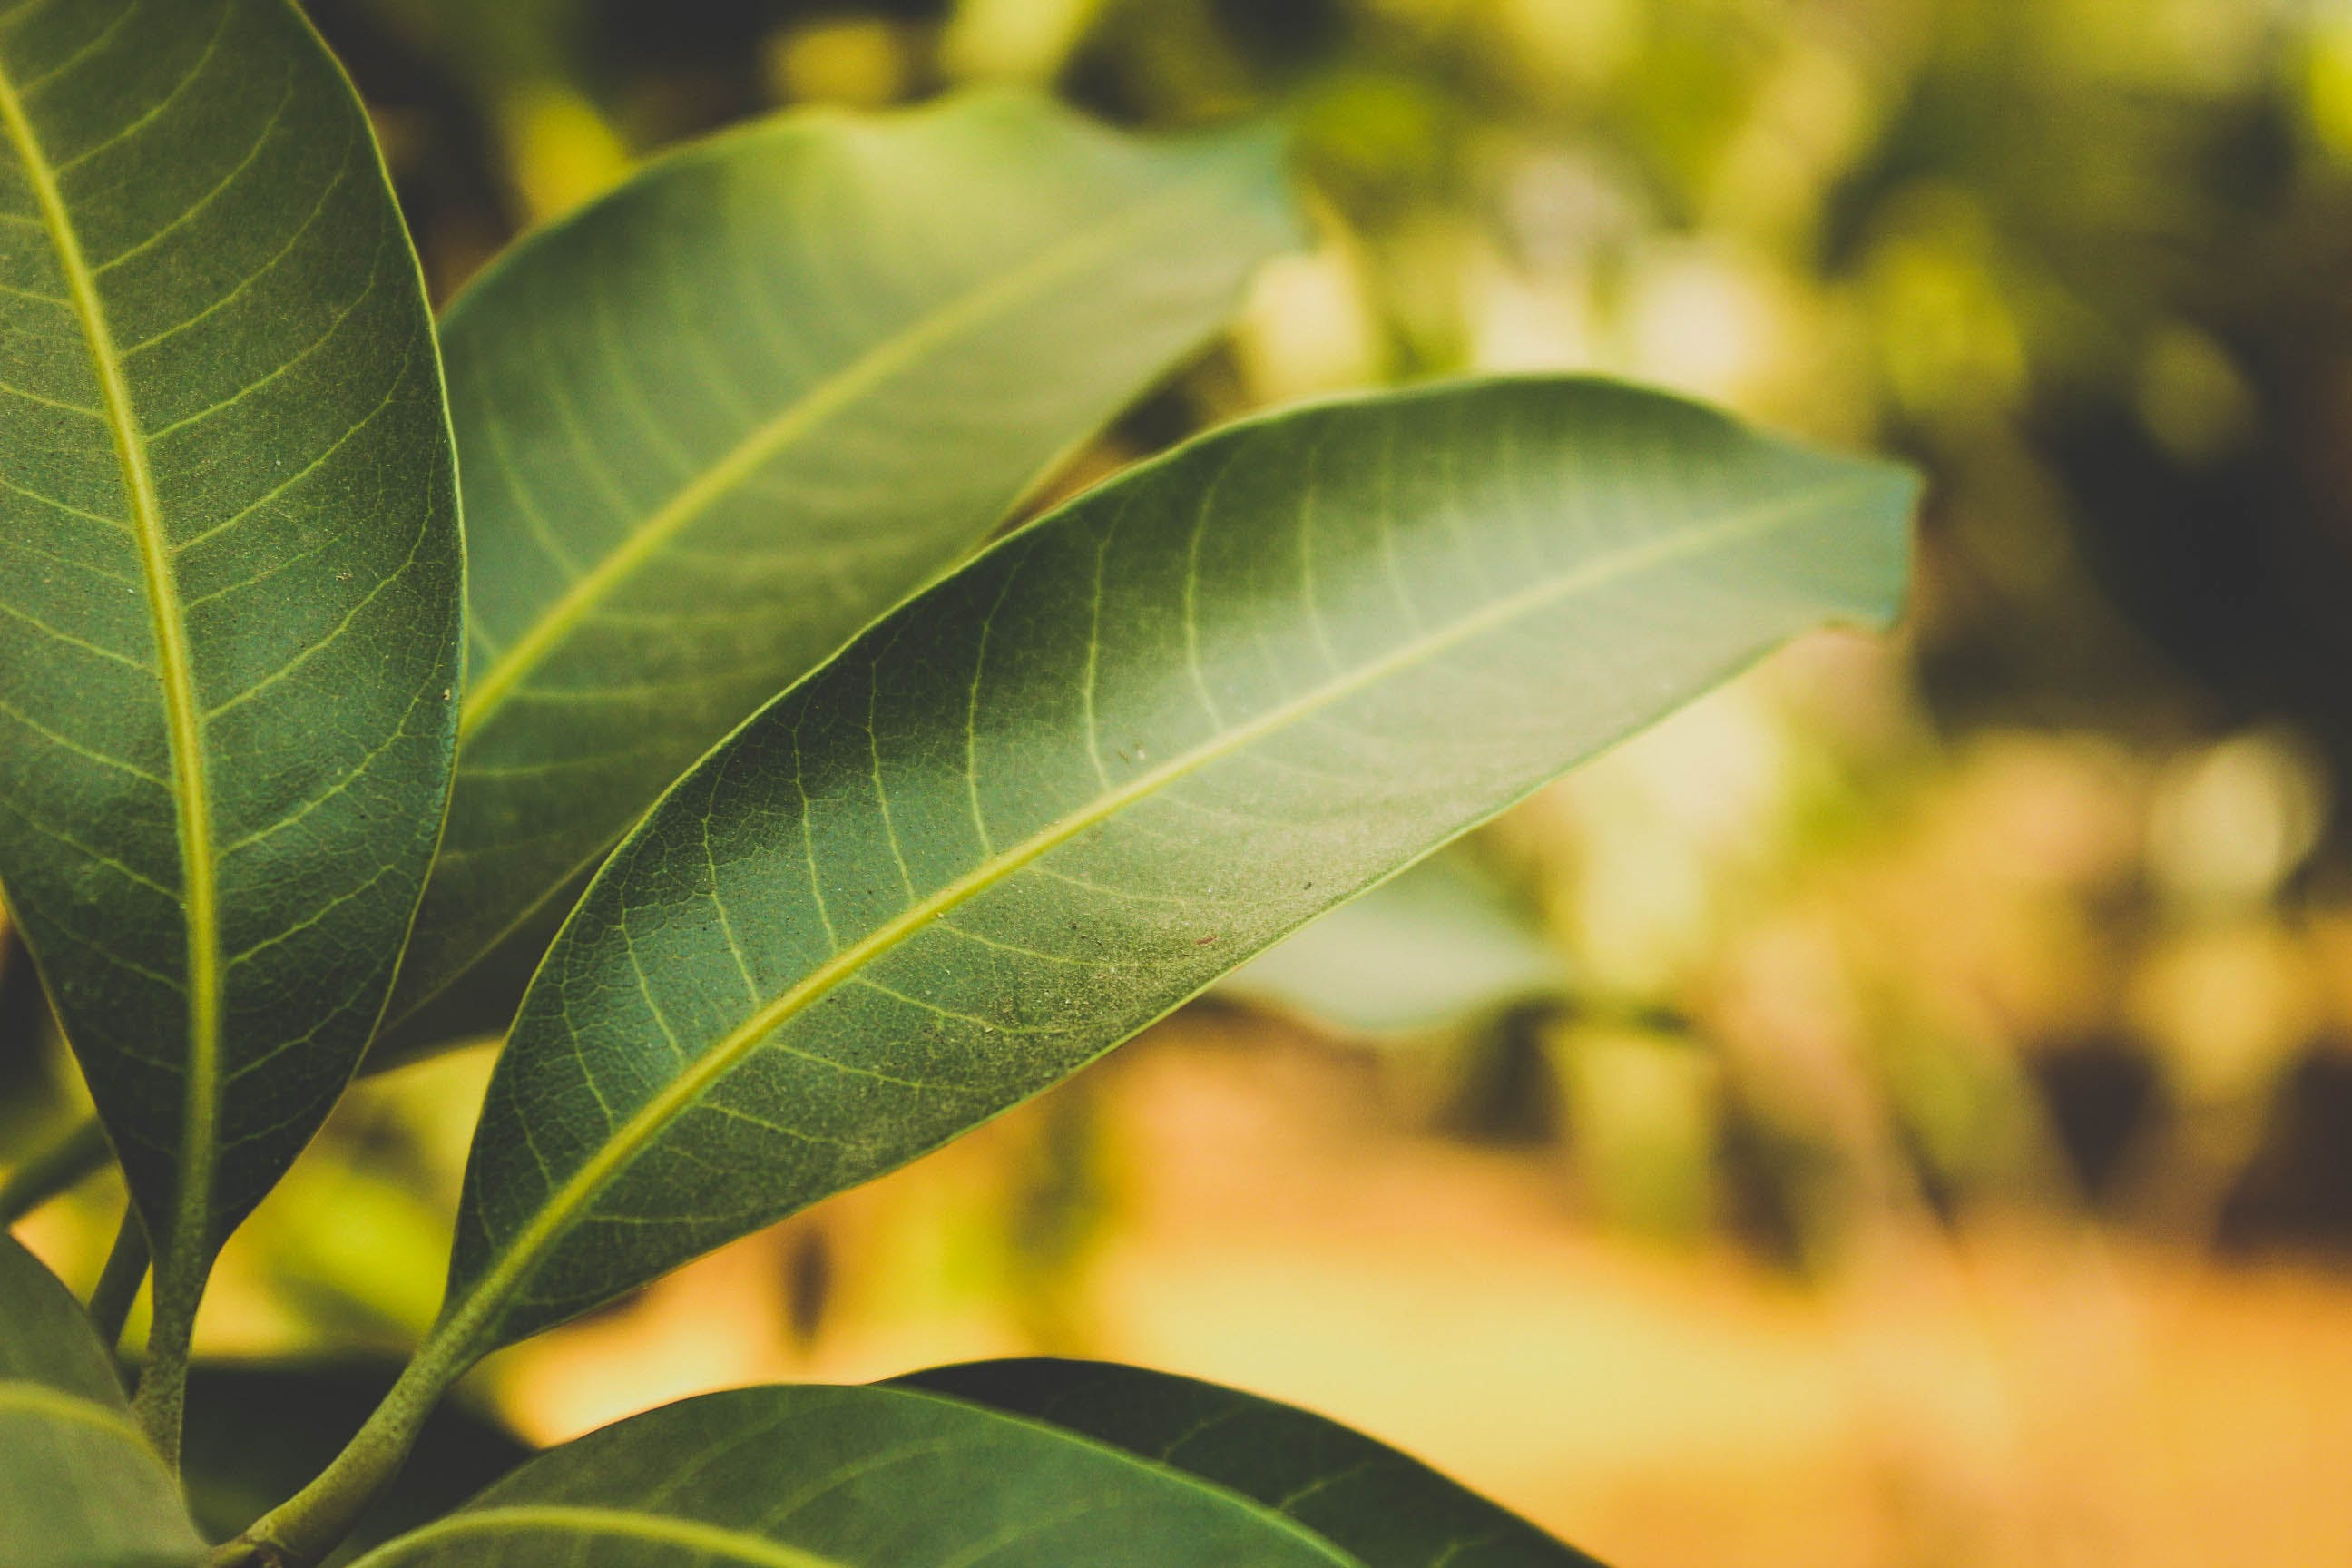 Free stock photo of plant, blur, leaves, focus